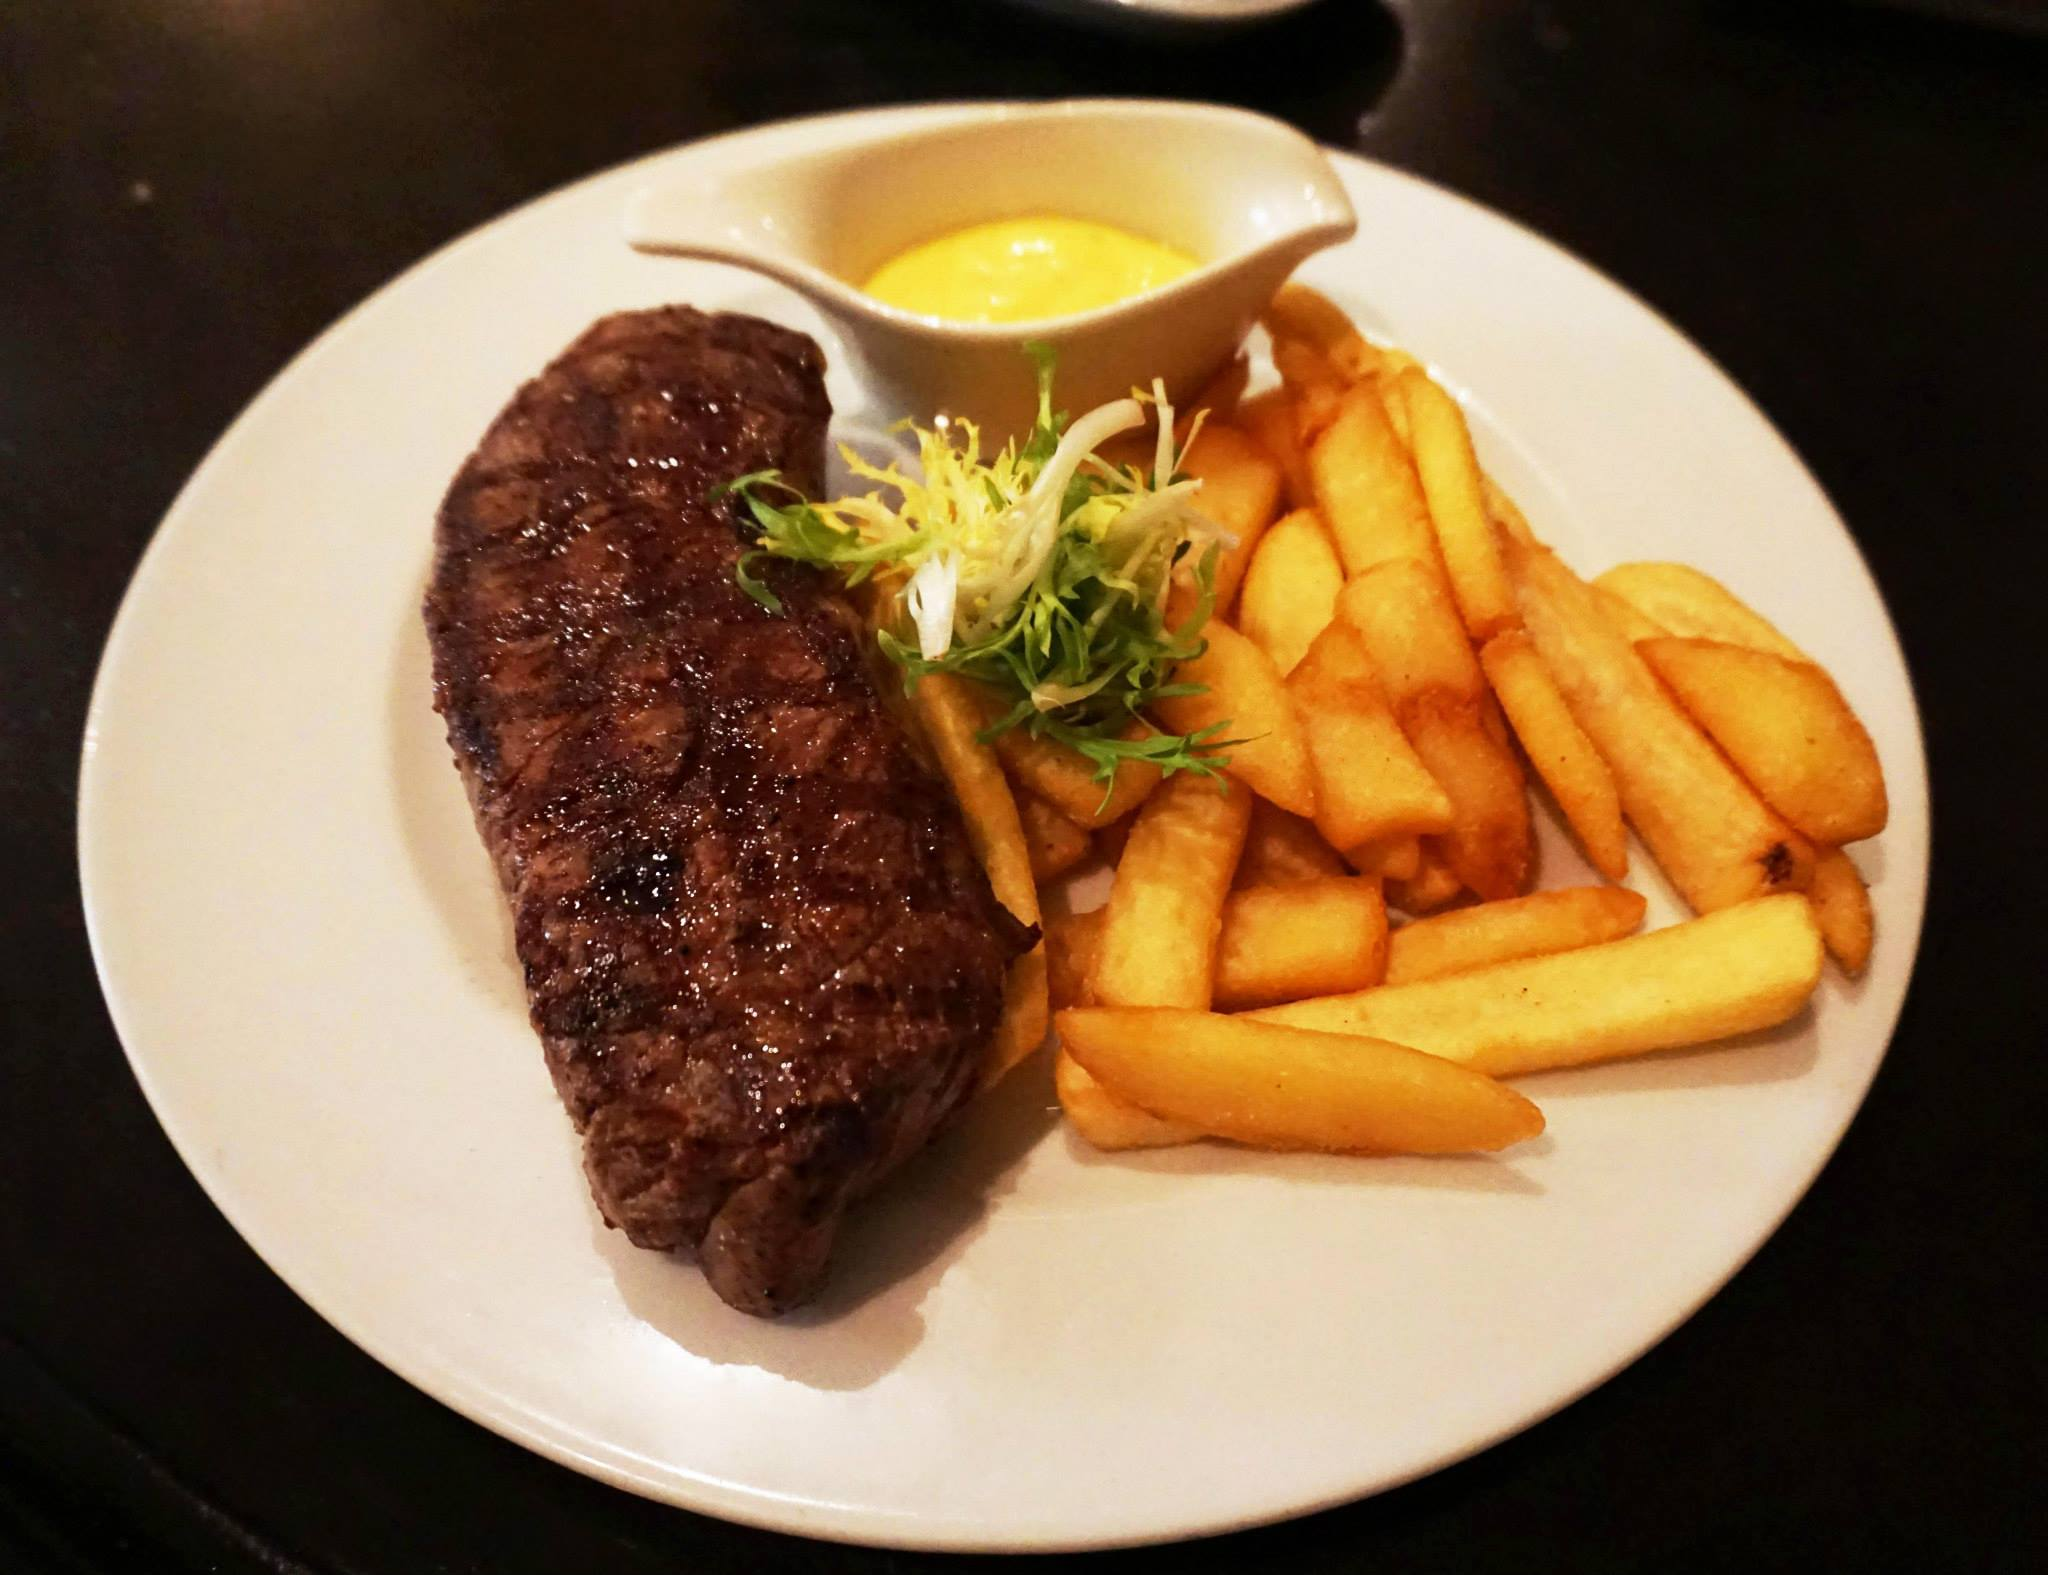 Kingsleys Australian Steakhouse, CBD